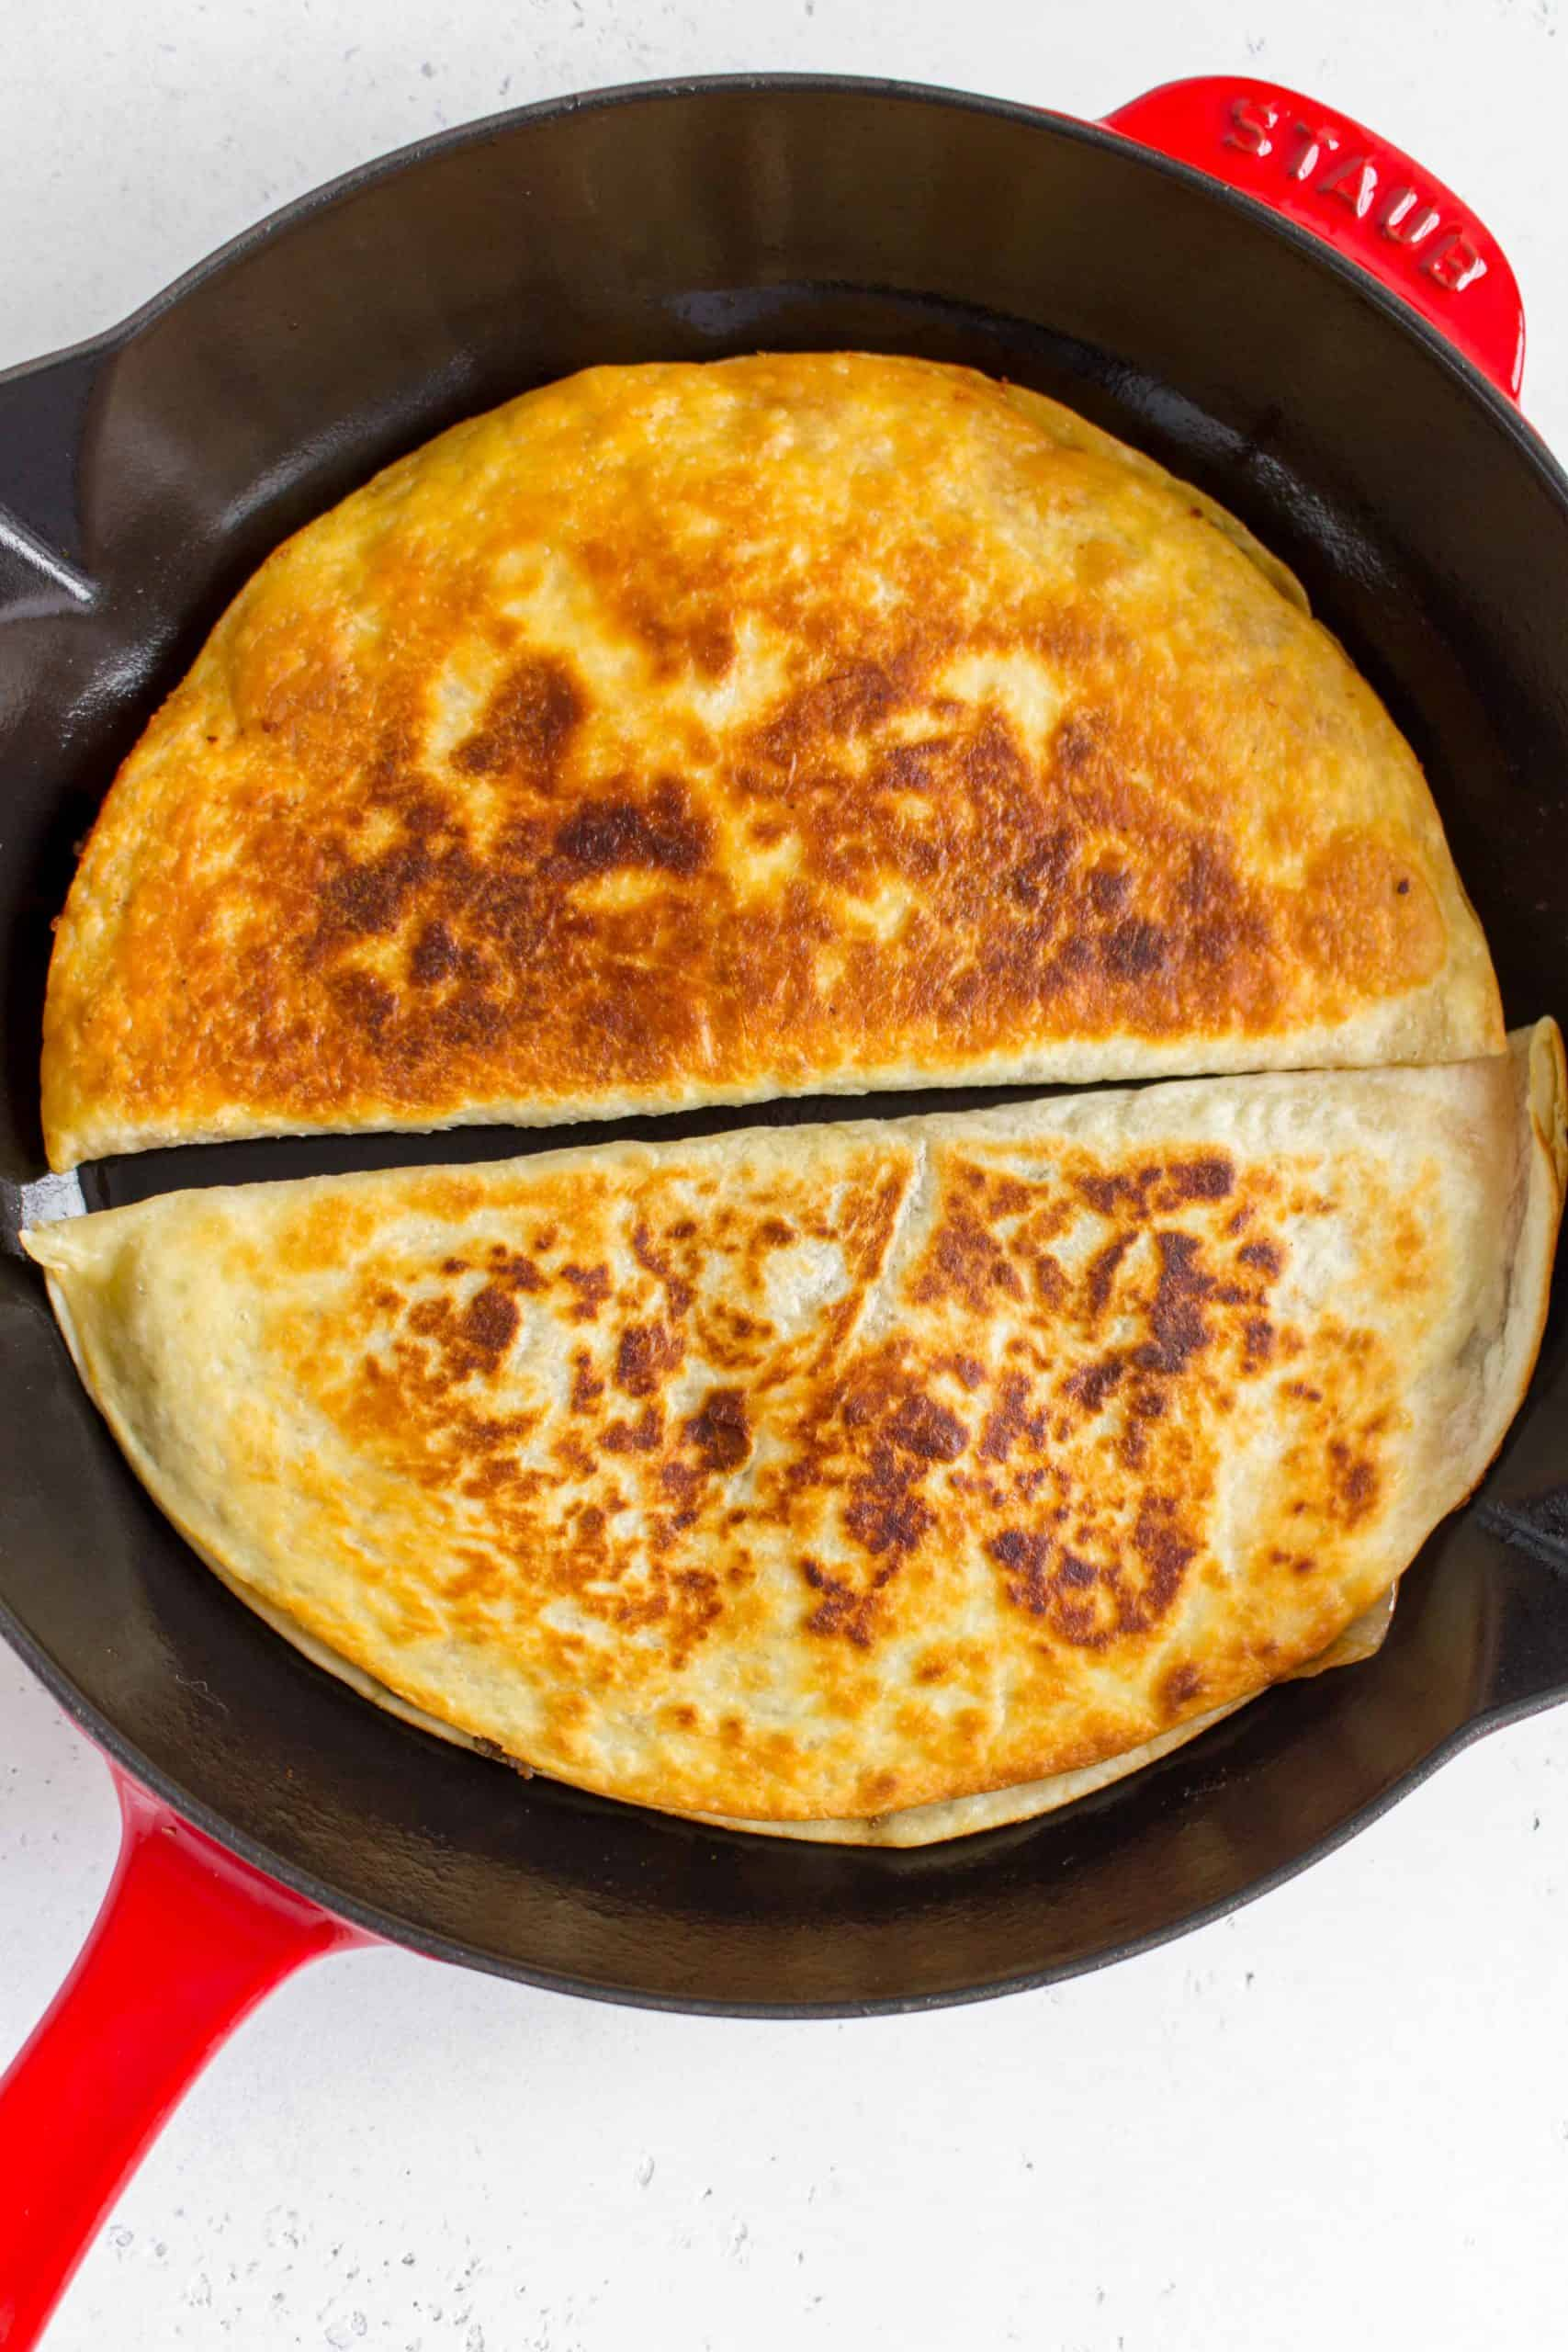 crispy and golden quesadillas in a staub pan